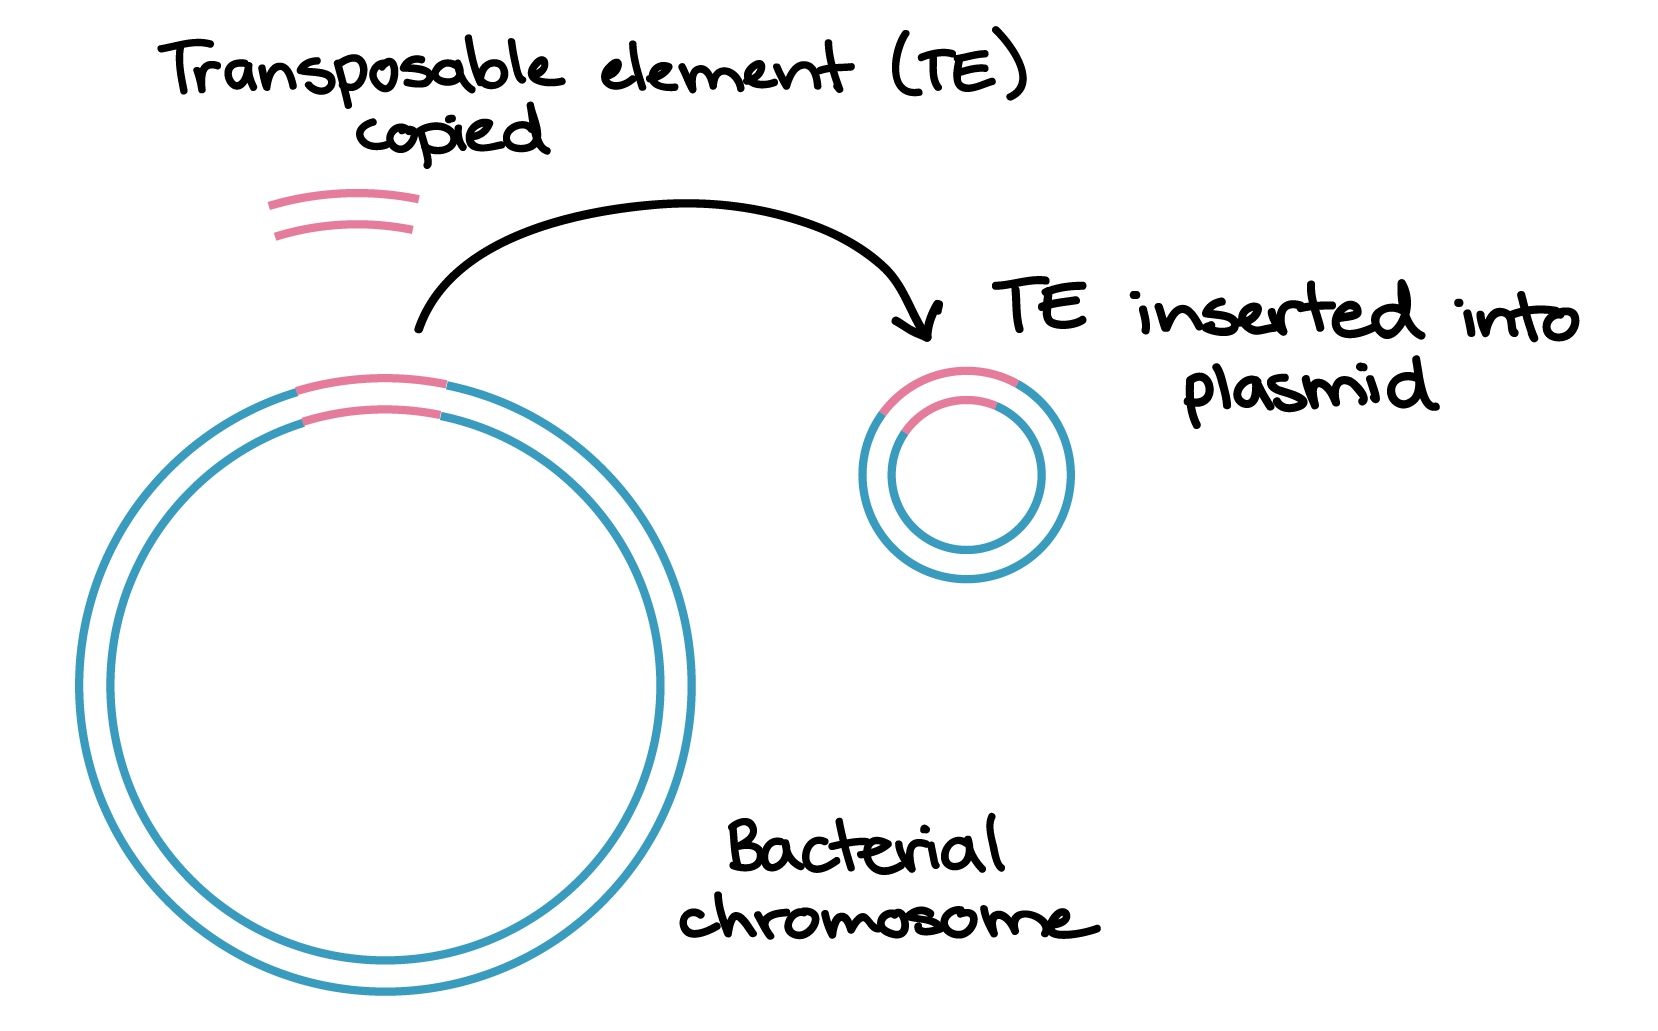 hight resolution of one way that transposons can move around the genome is by copying themselves and inserting the